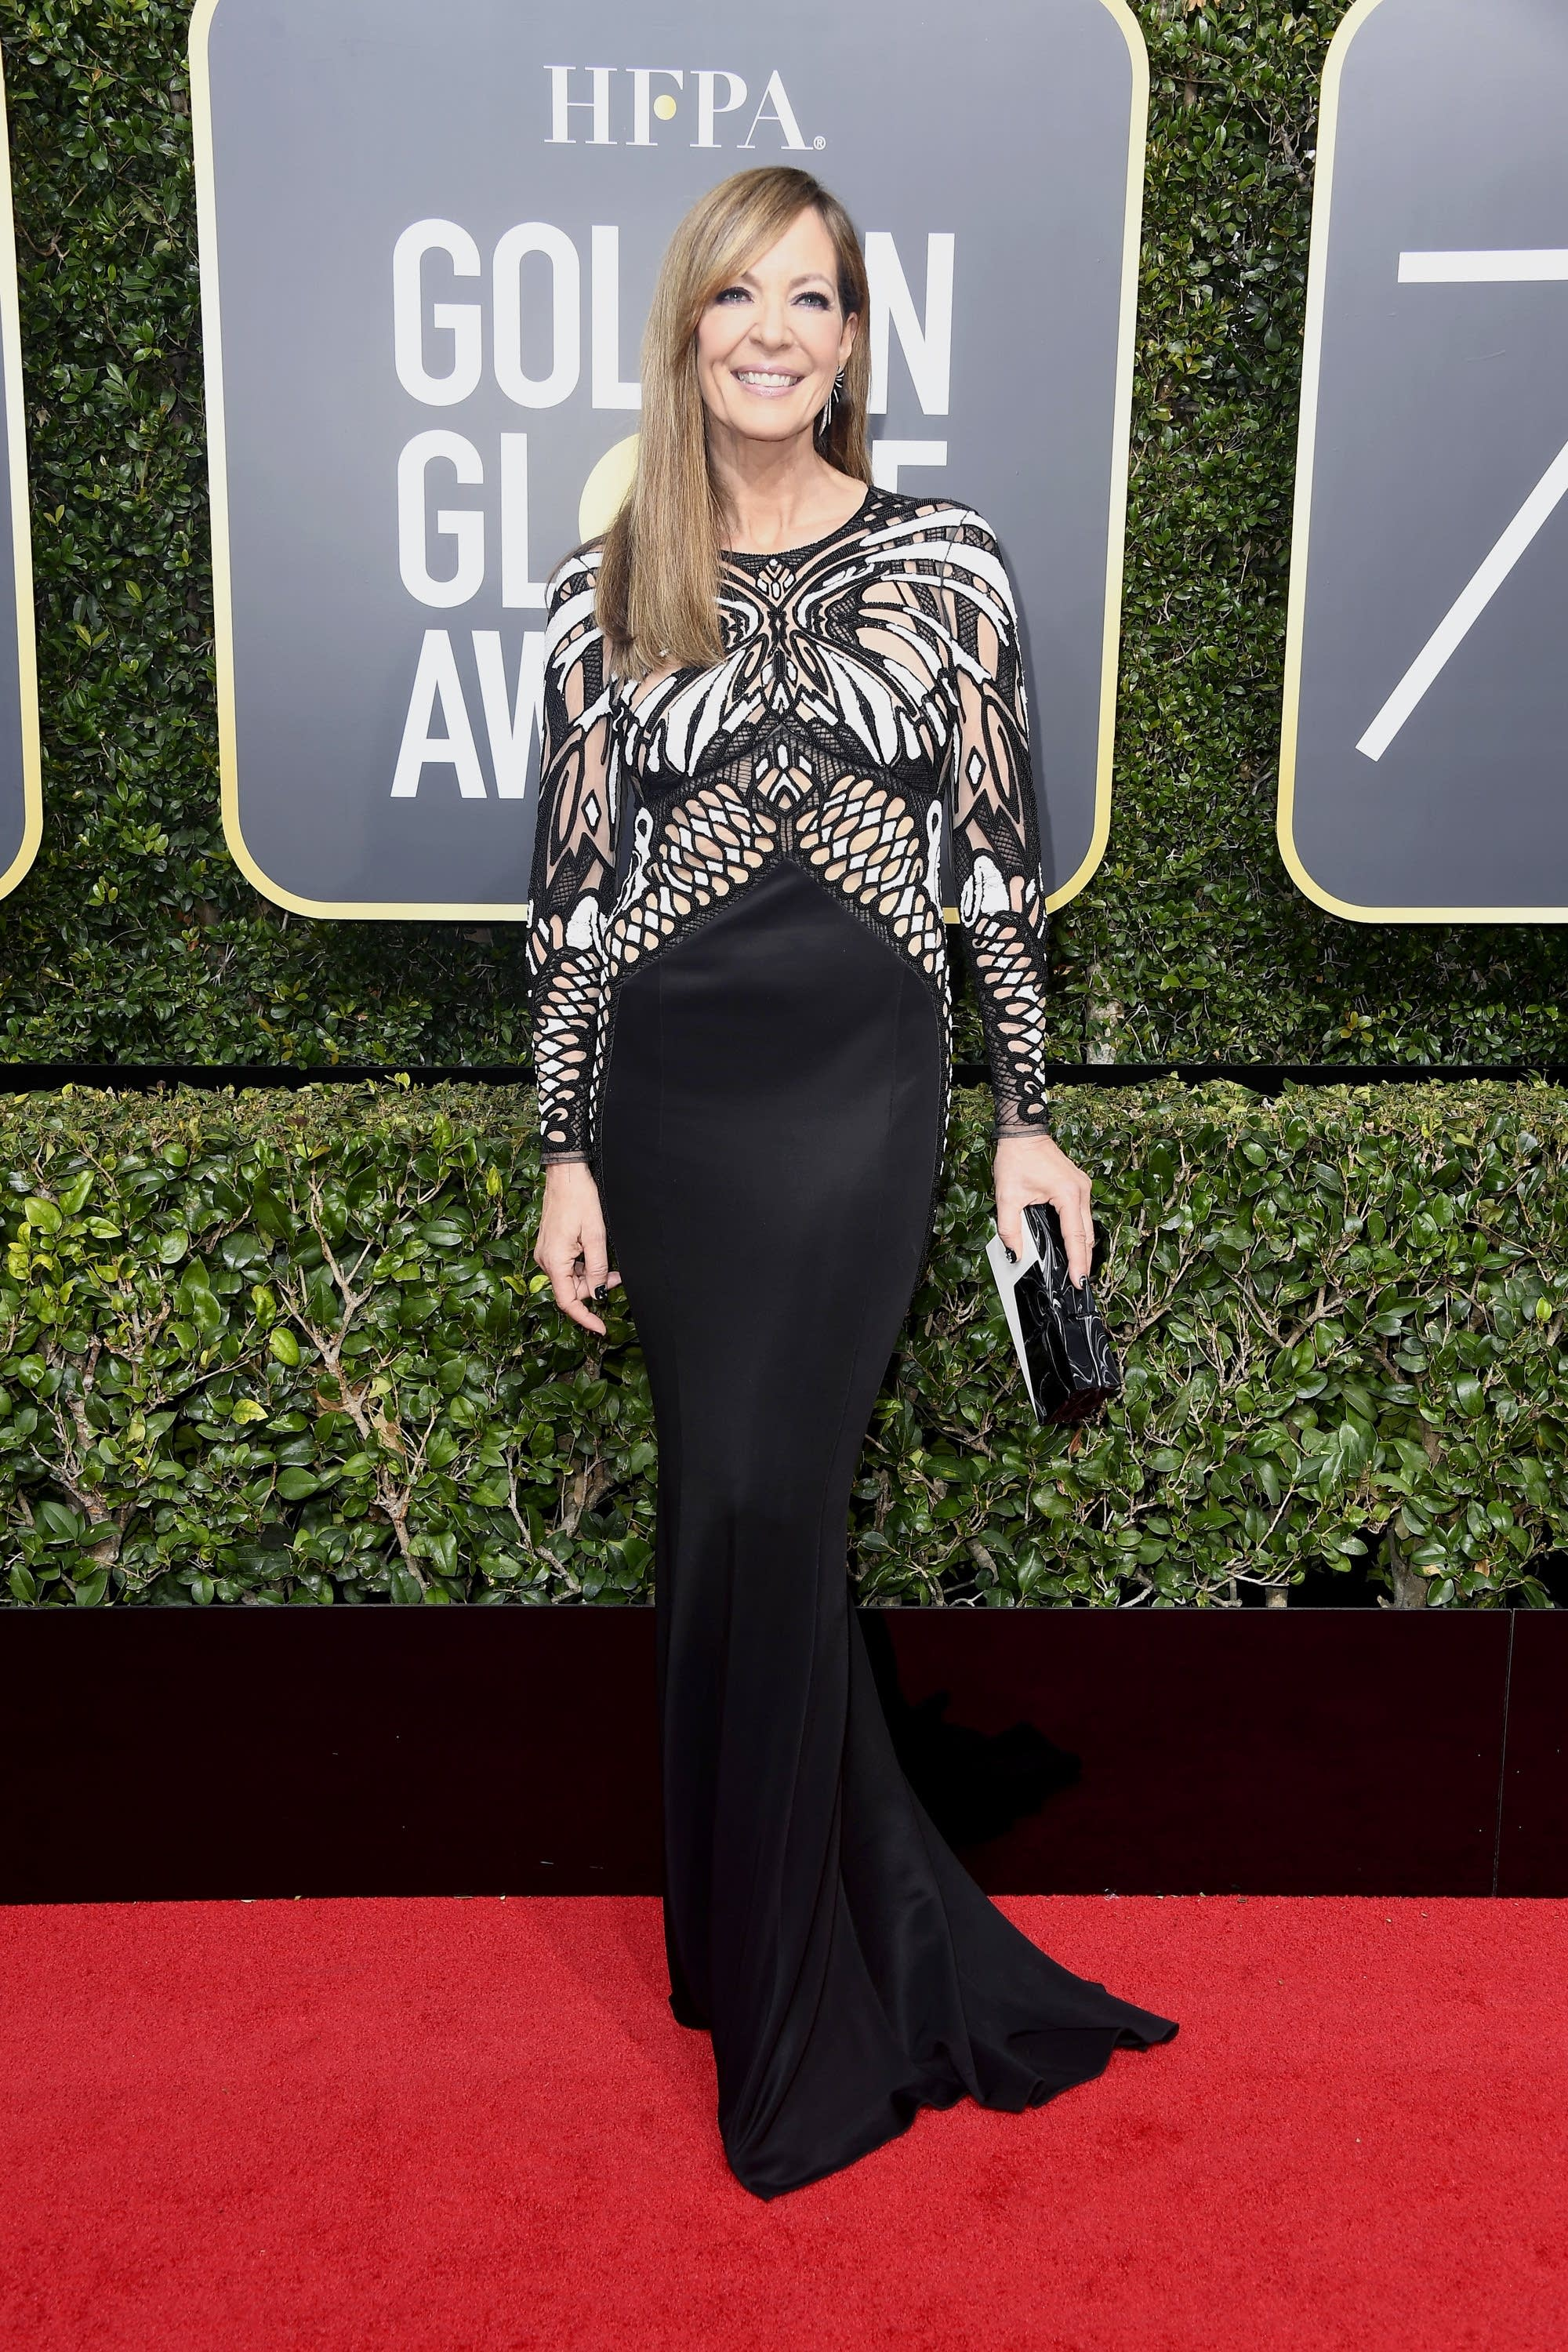 Allison Janney attends the 75th Annual Golden Globe awards.